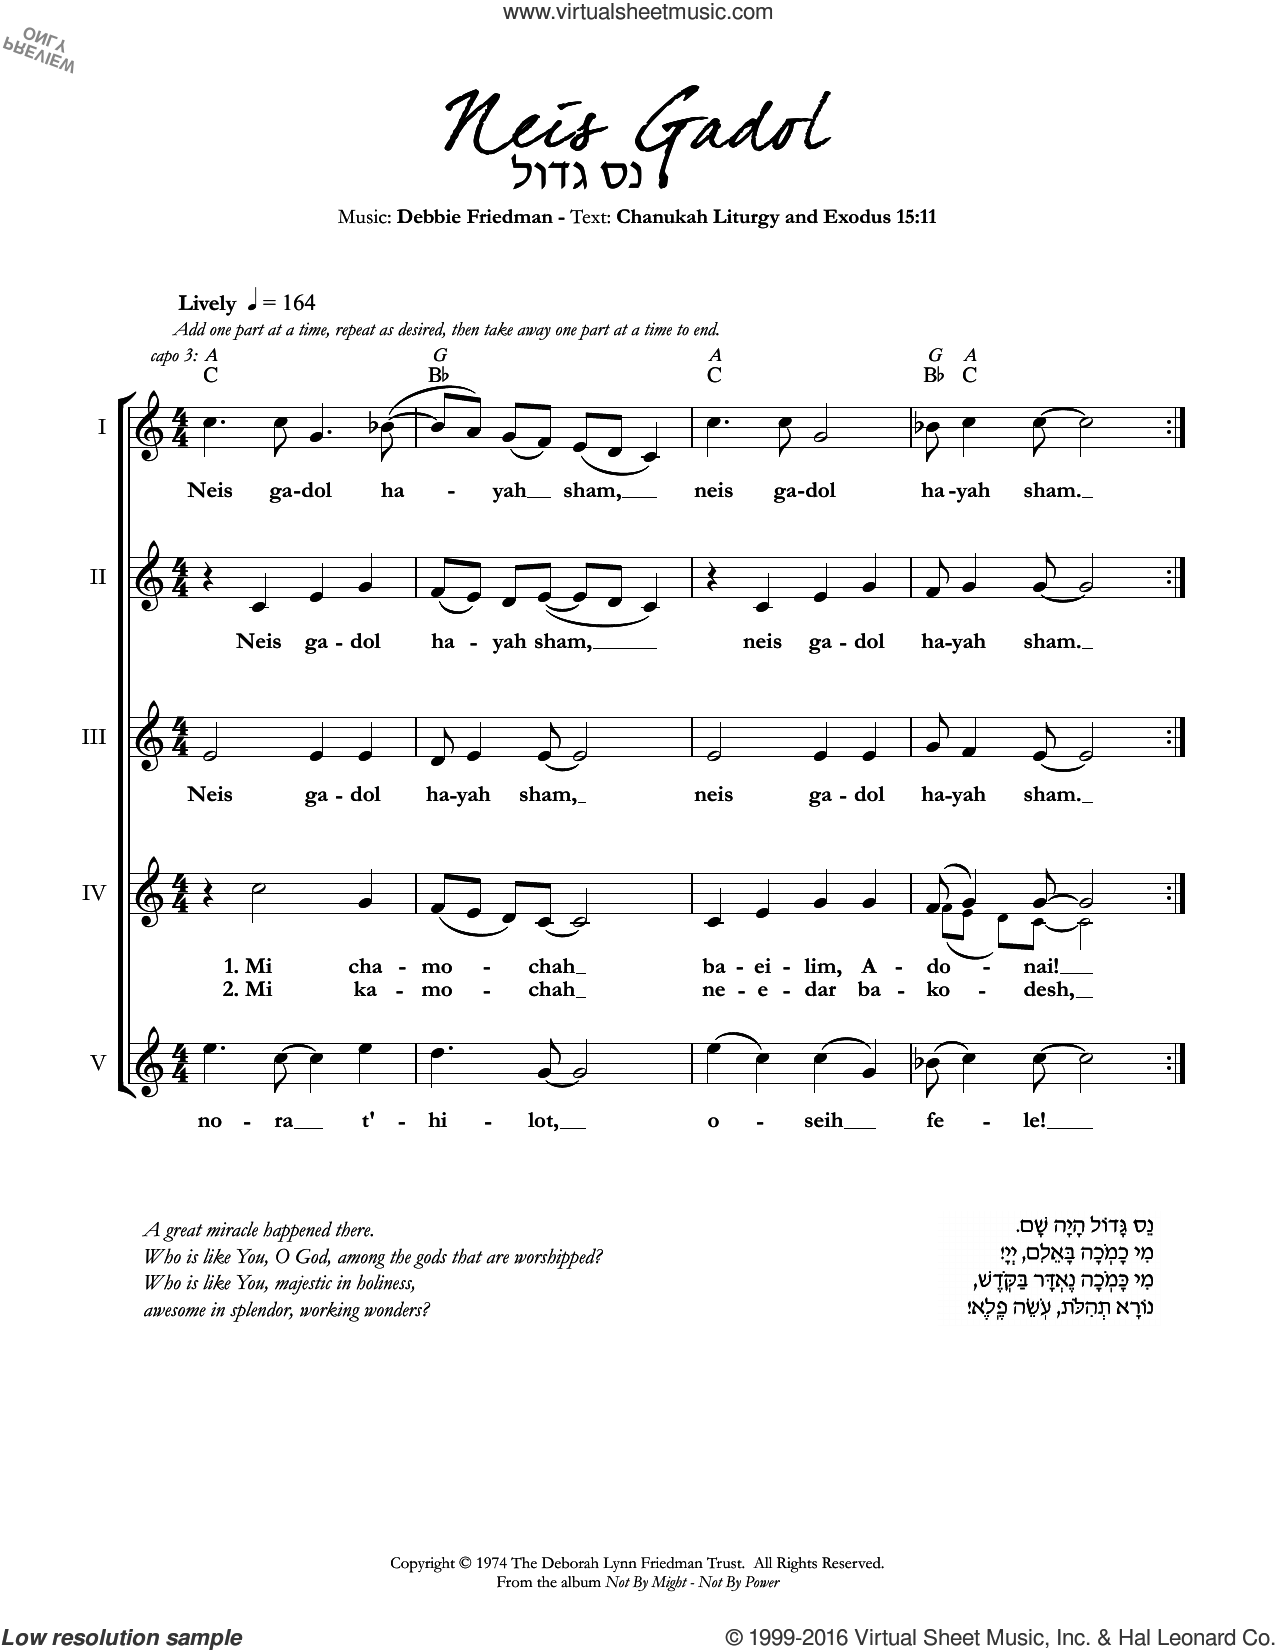 Neis Gadol sheet music for voice and other instruments (fake book) by Debbie Friedman. Score Image Preview.